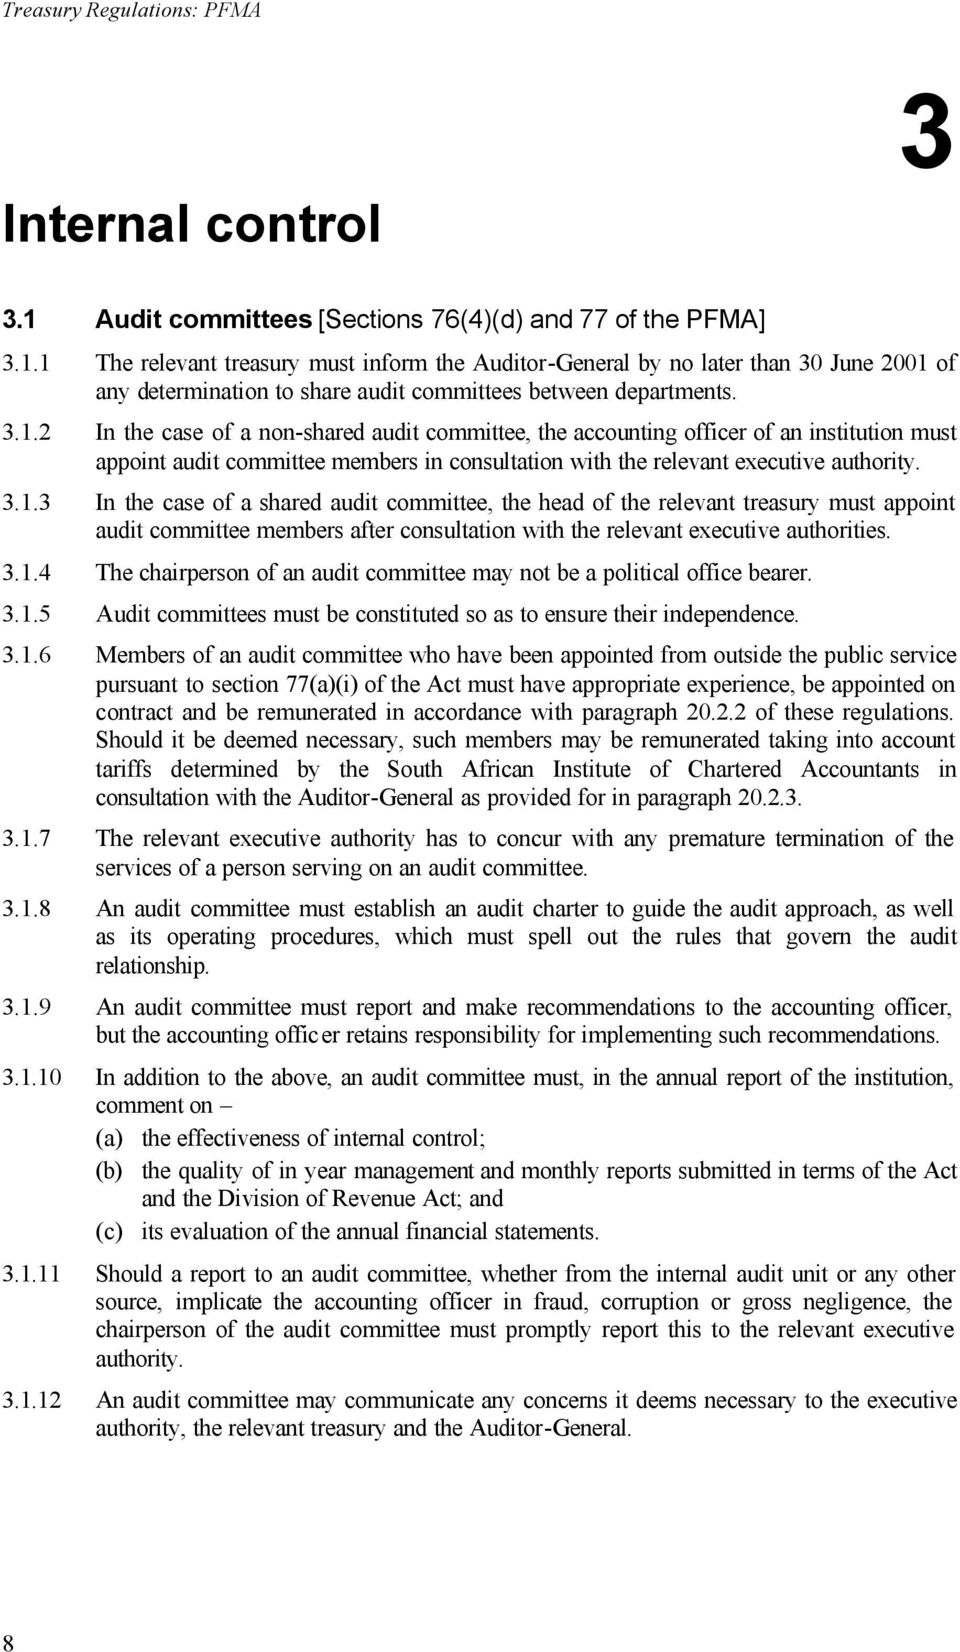 1 The relevant treasury must inform the Auditor-General by no later than 30 June 2001 of any determination to share audit committees between departments. 3.1.2 In the case of a non-shared audit committee, the accounting officer of an institution must appoint audit committee members in consultation with the relevant executive authority.